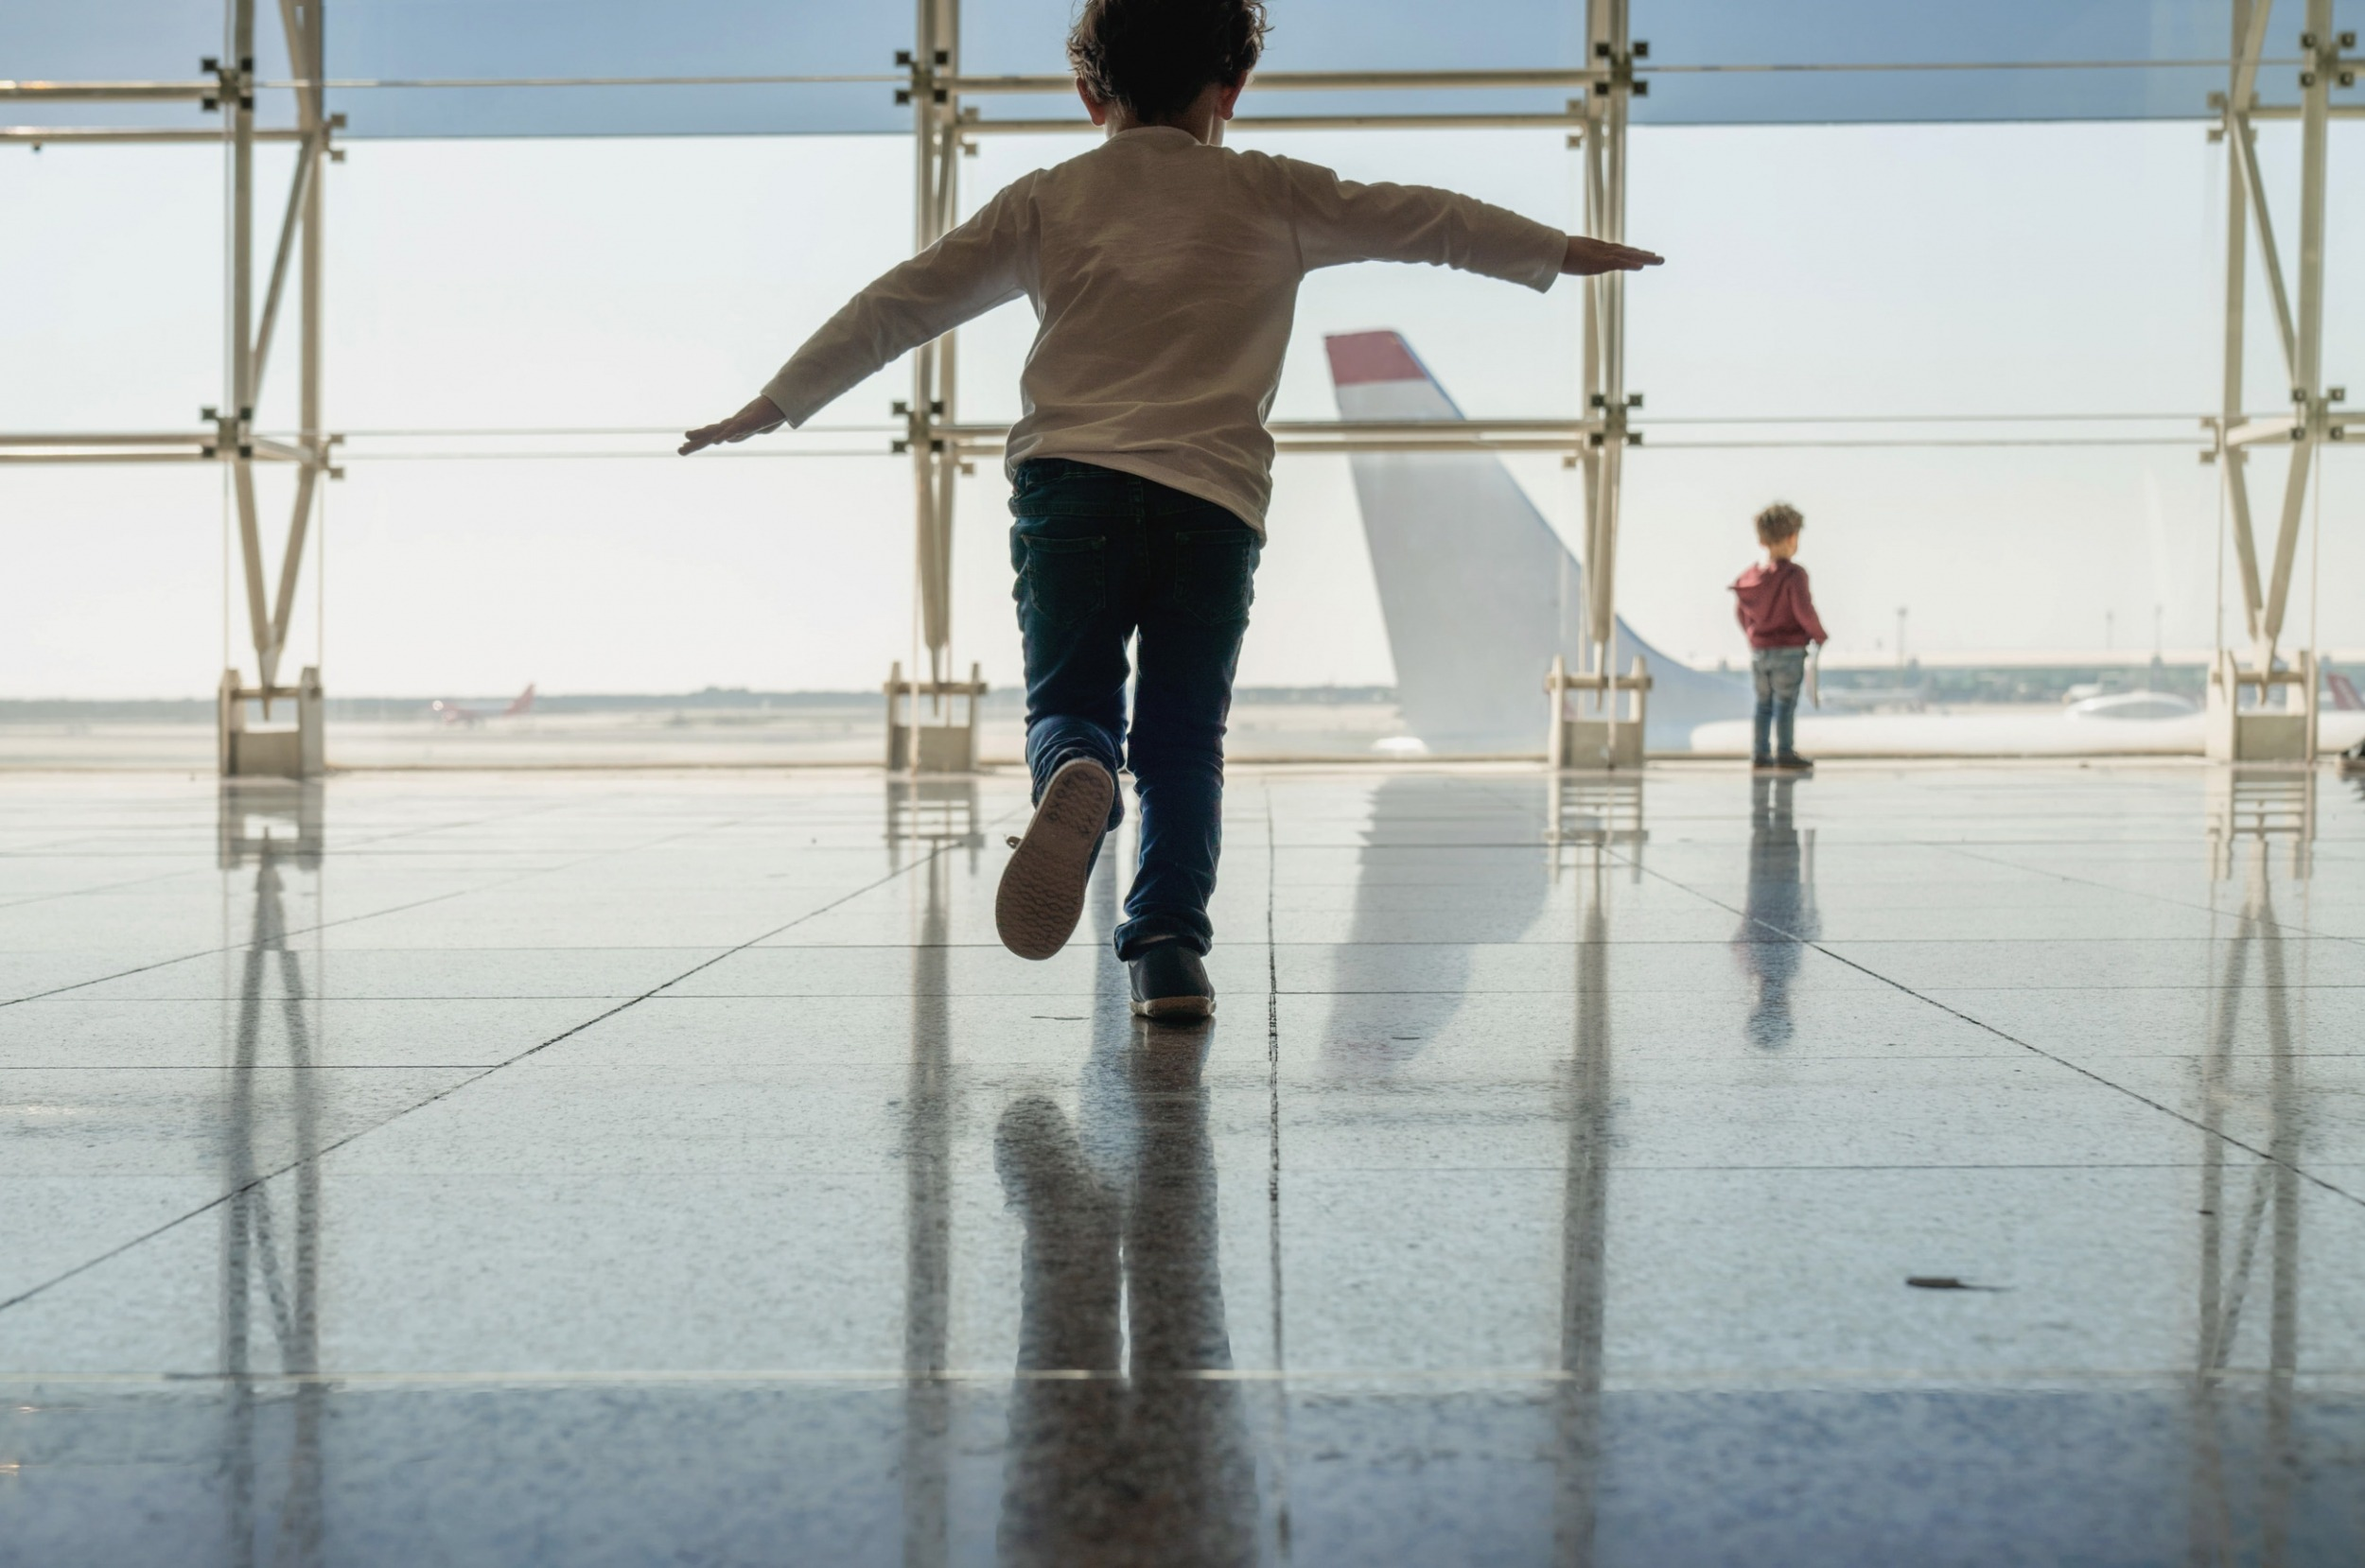 ETQ Reliance aviation safety management system child mimicking flying in airport